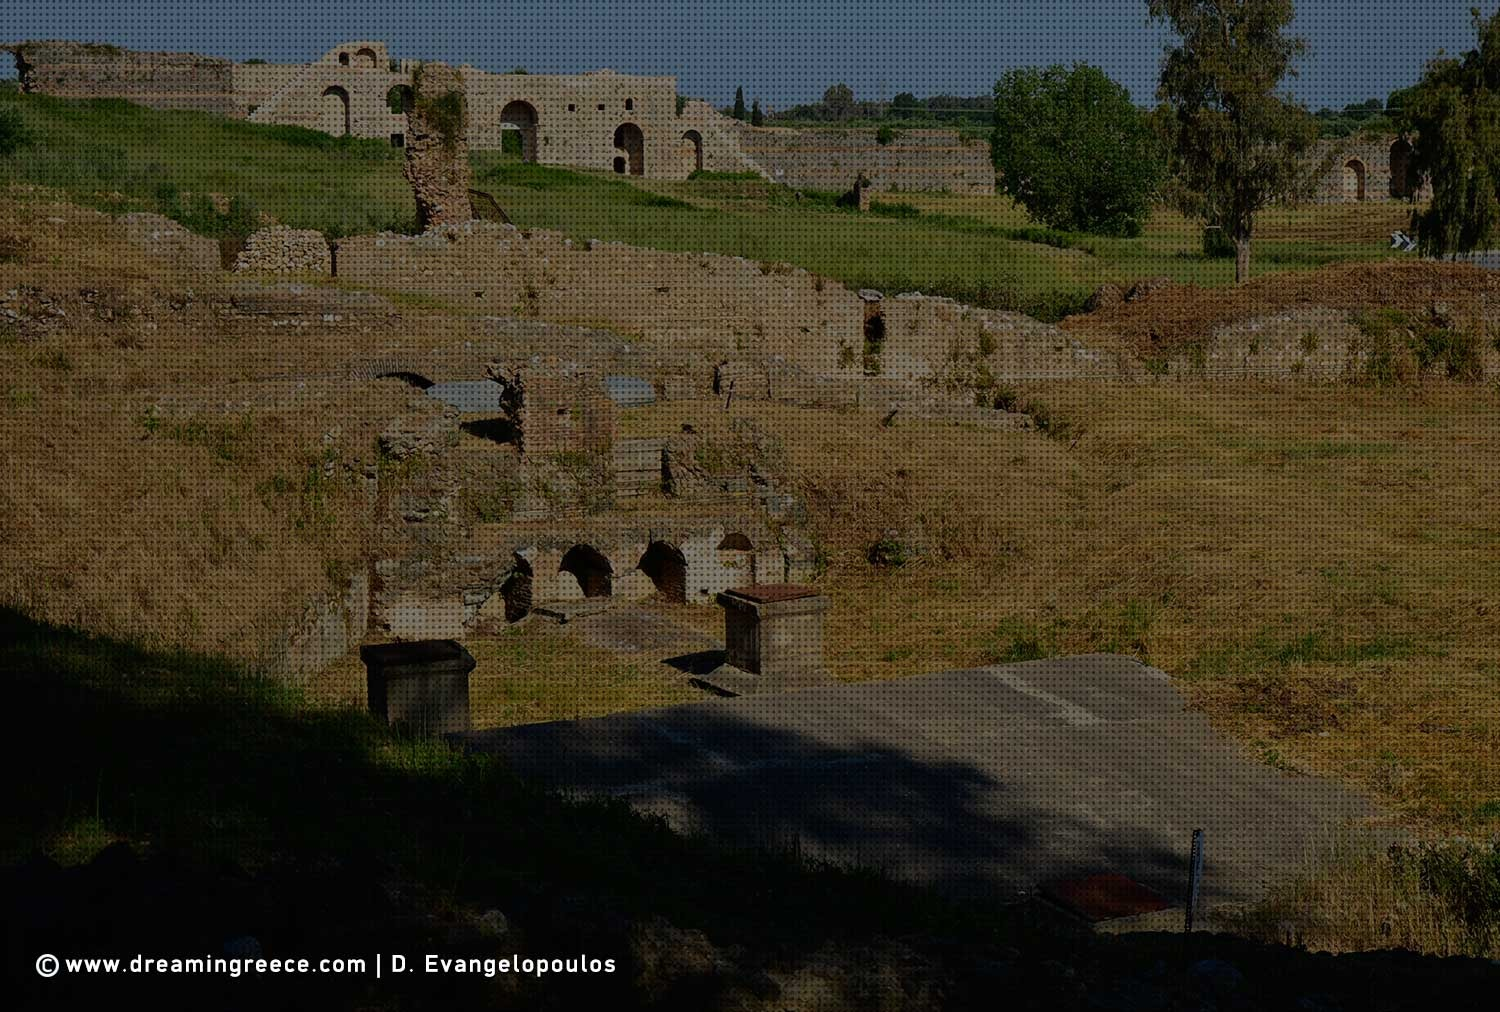 Archaeological Site of Nikopolis Preveza. Archaeological sites in Greece.